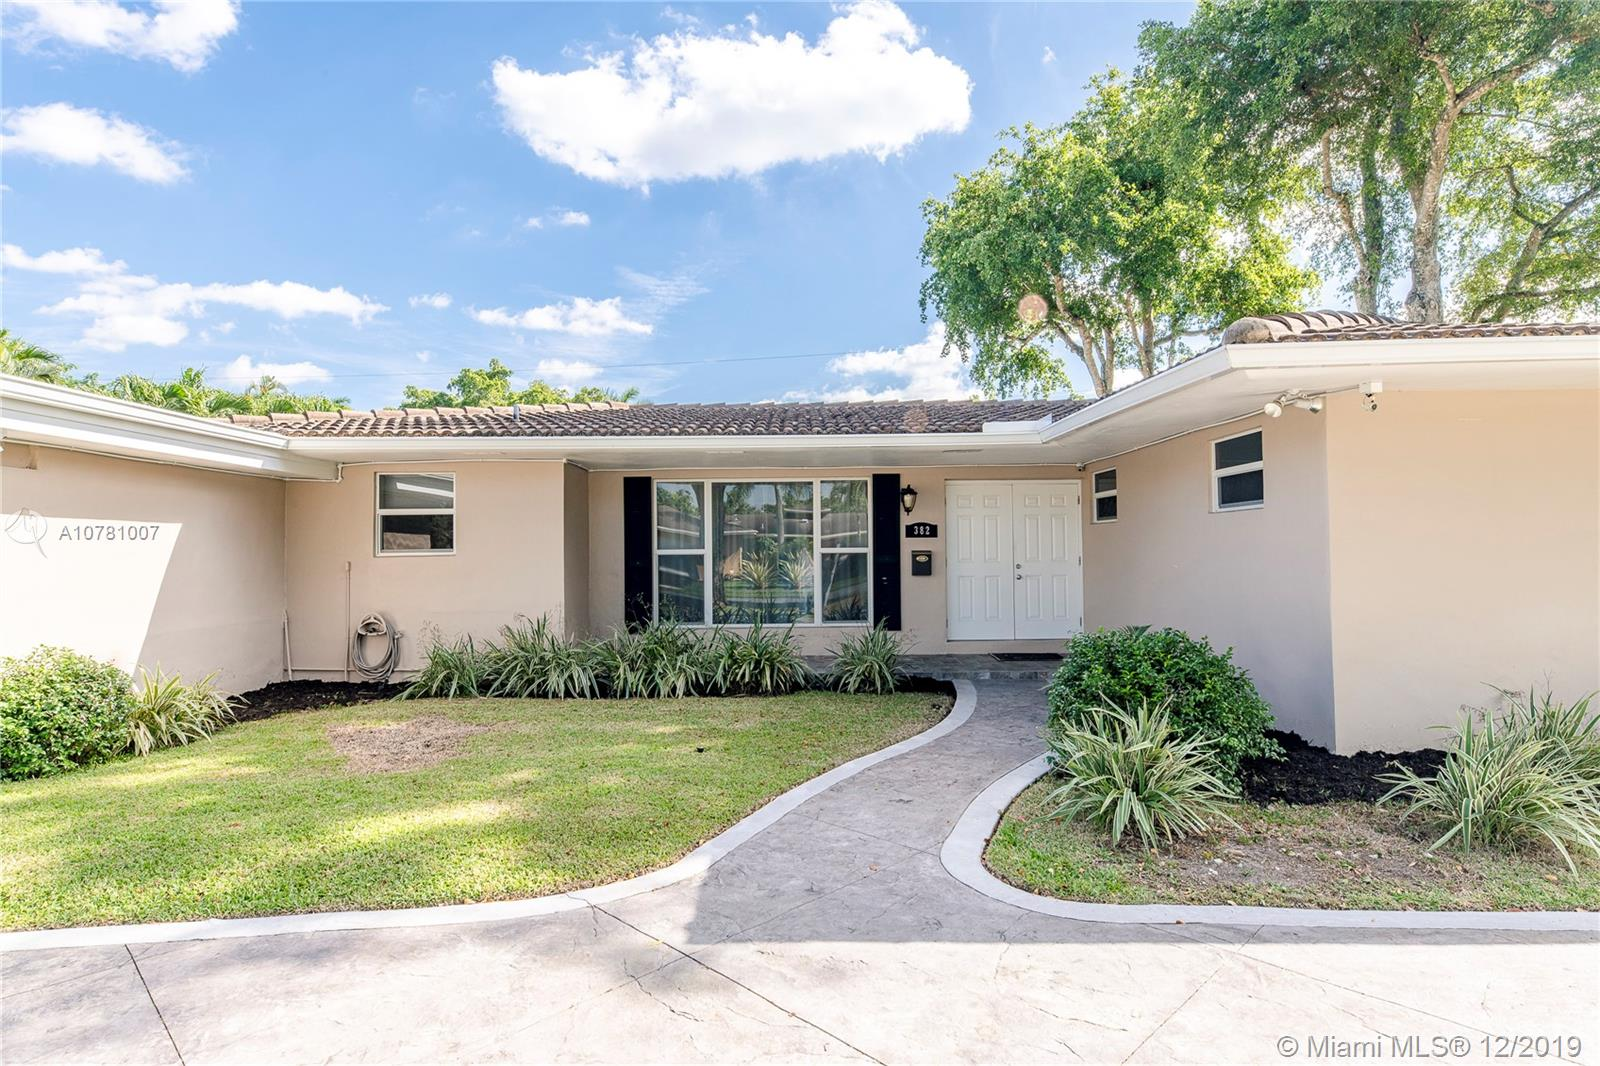 382 SW 60th Ave, Plantation, FL 33317